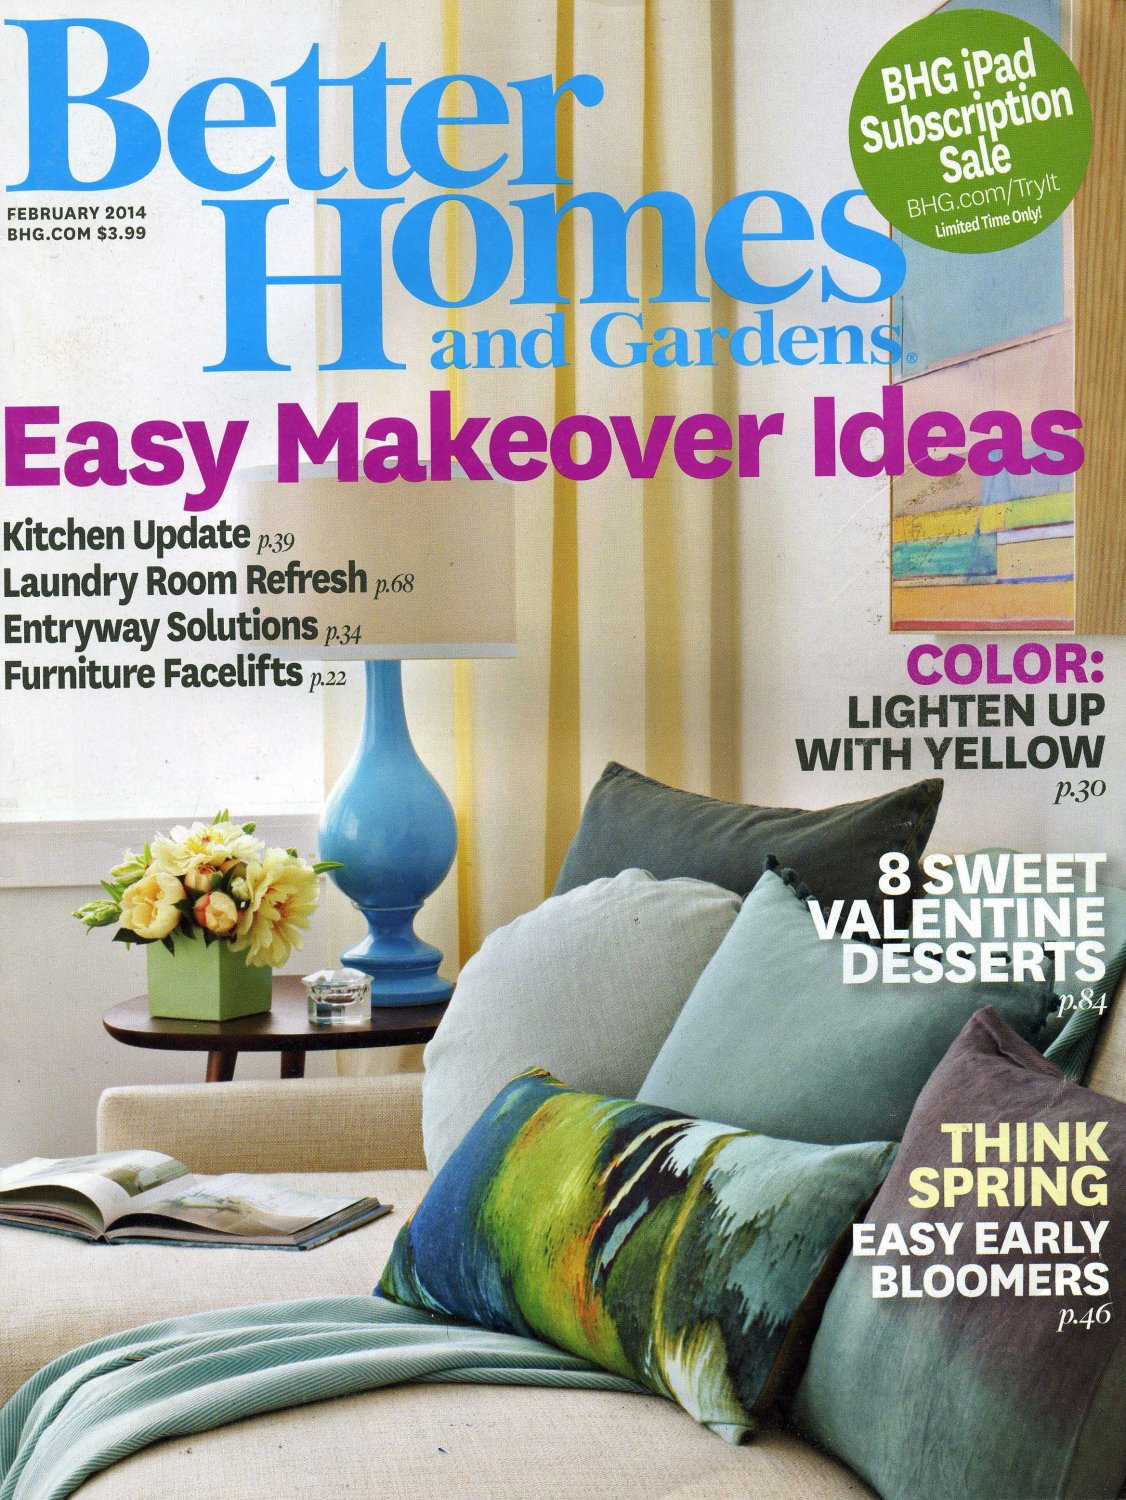 Better homes and gardens february 2014 for Better homes and gardens tv show contact